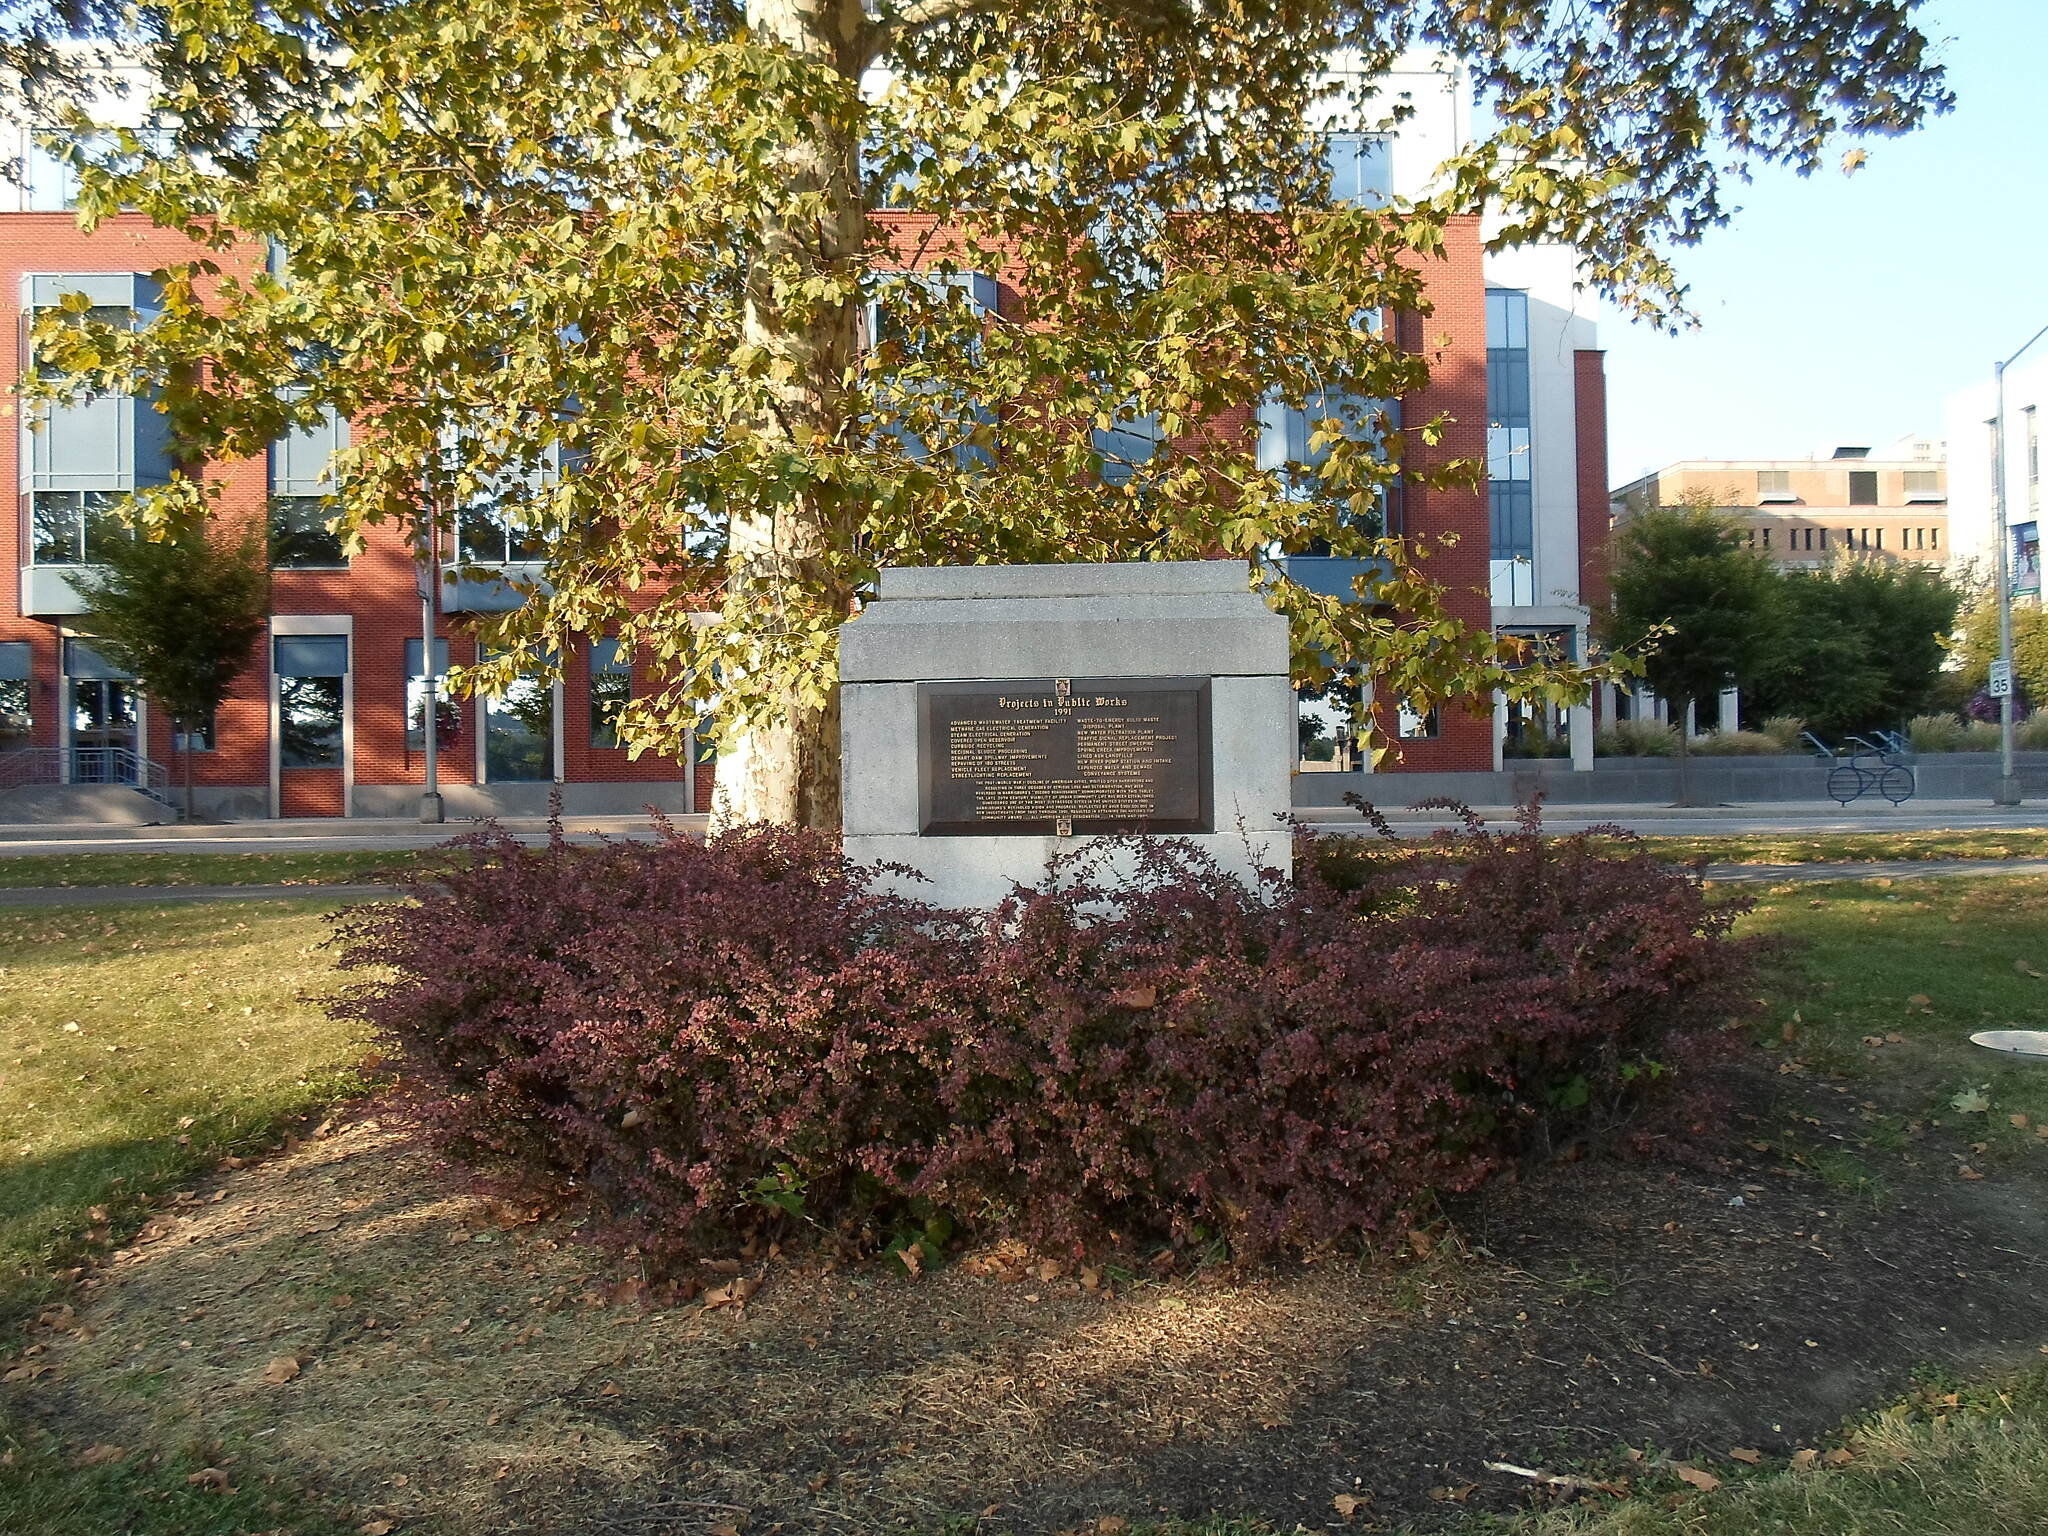 Capital Area Greenbelt Capital Area Greenbelt Another monument on the Harrisburg riverfront.